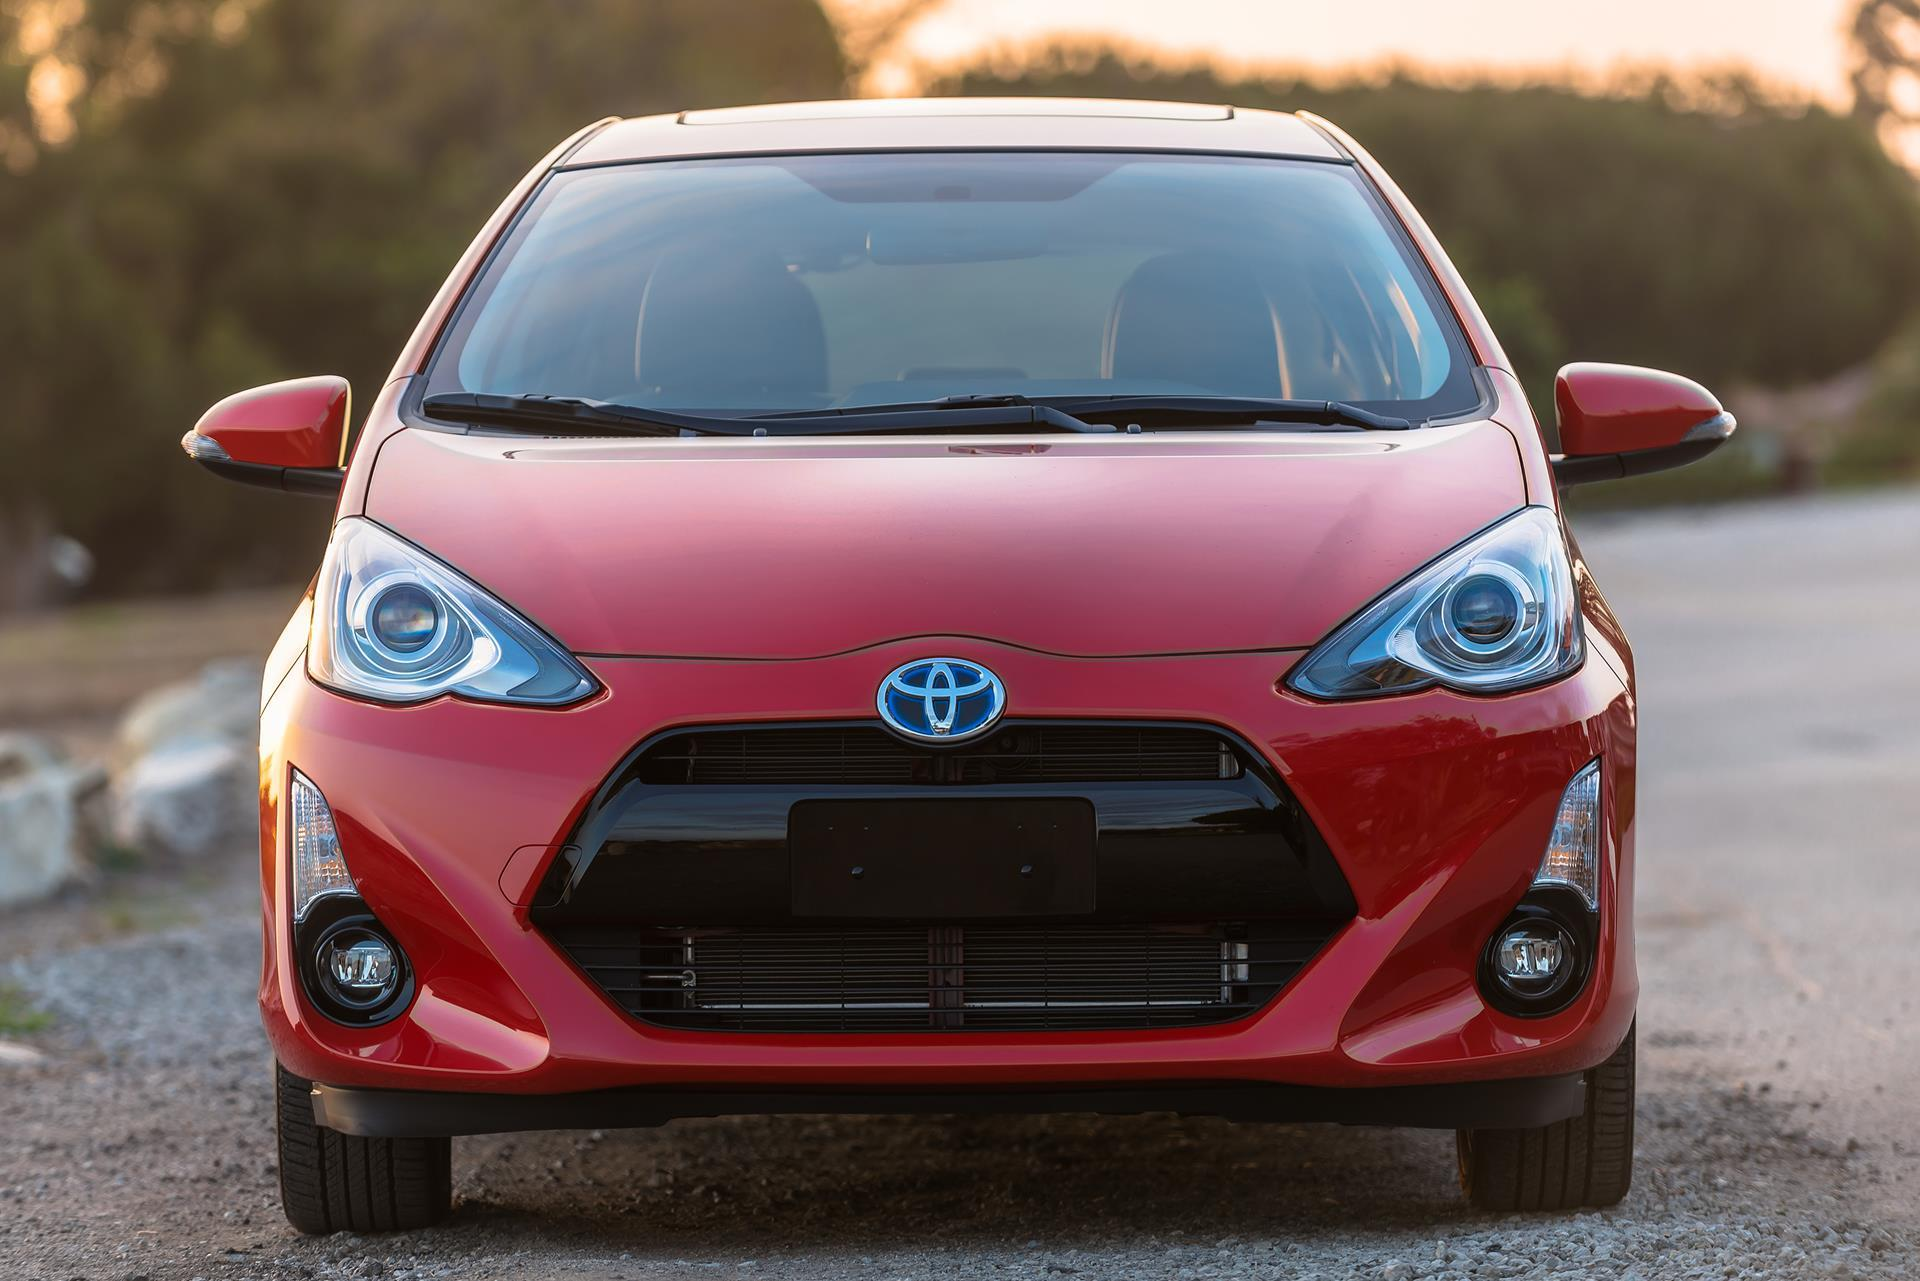 2017 toyota prius c technical specifications and data engine dimensions and mechanical details. Black Bedroom Furniture Sets. Home Design Ideas